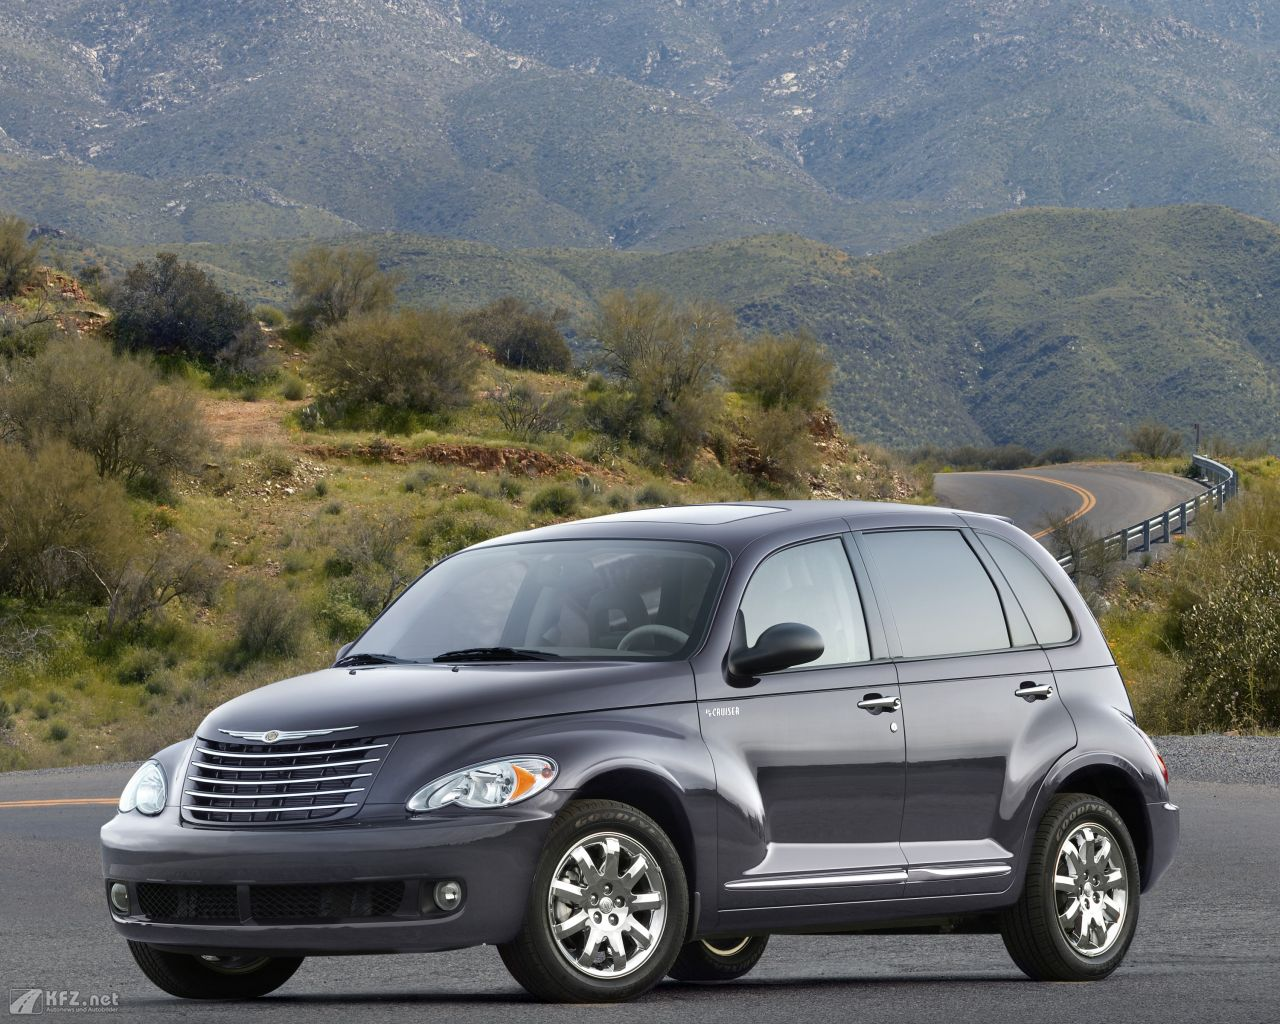 chrysler-pt-cruiser-1280x1024-2